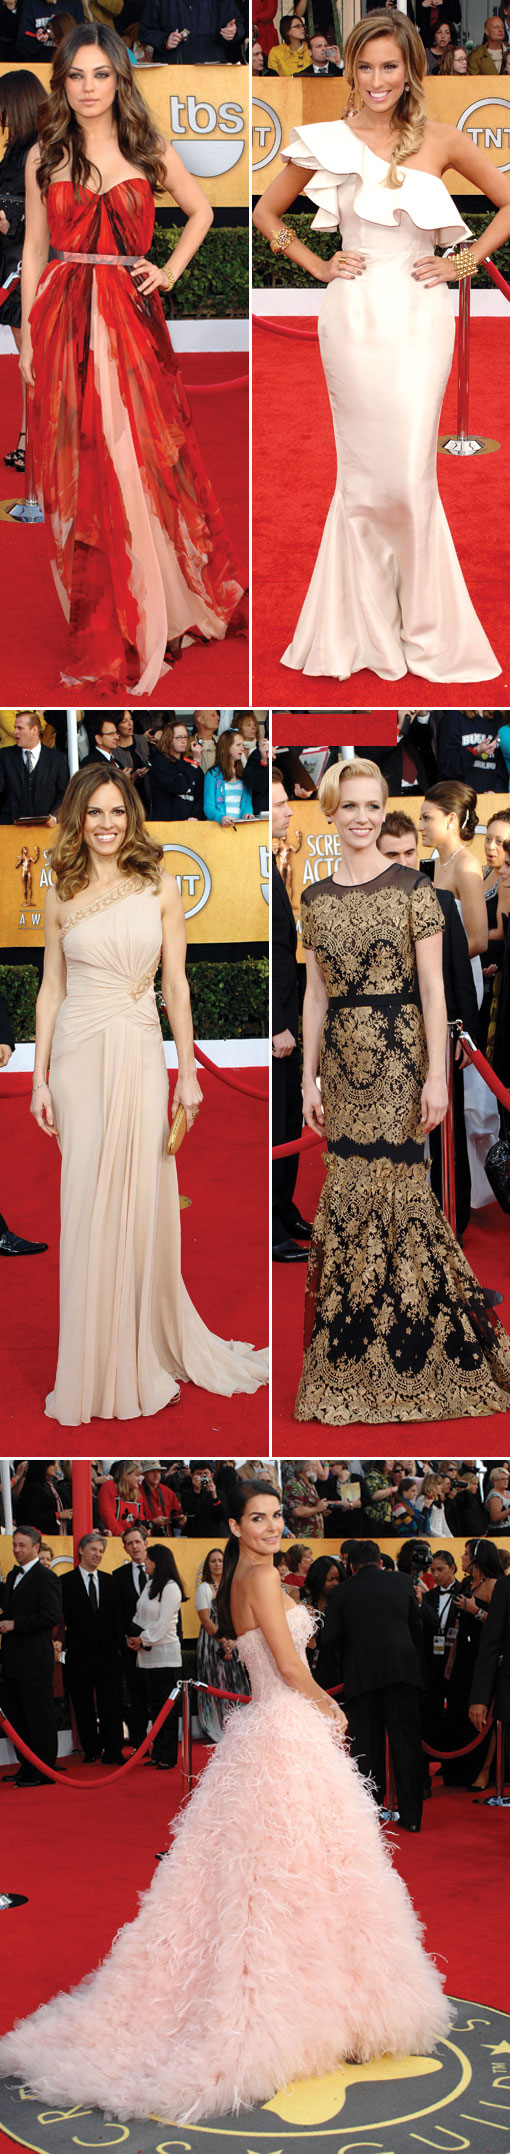 BnB's 2011 Screen Actors Guild Awards Recap